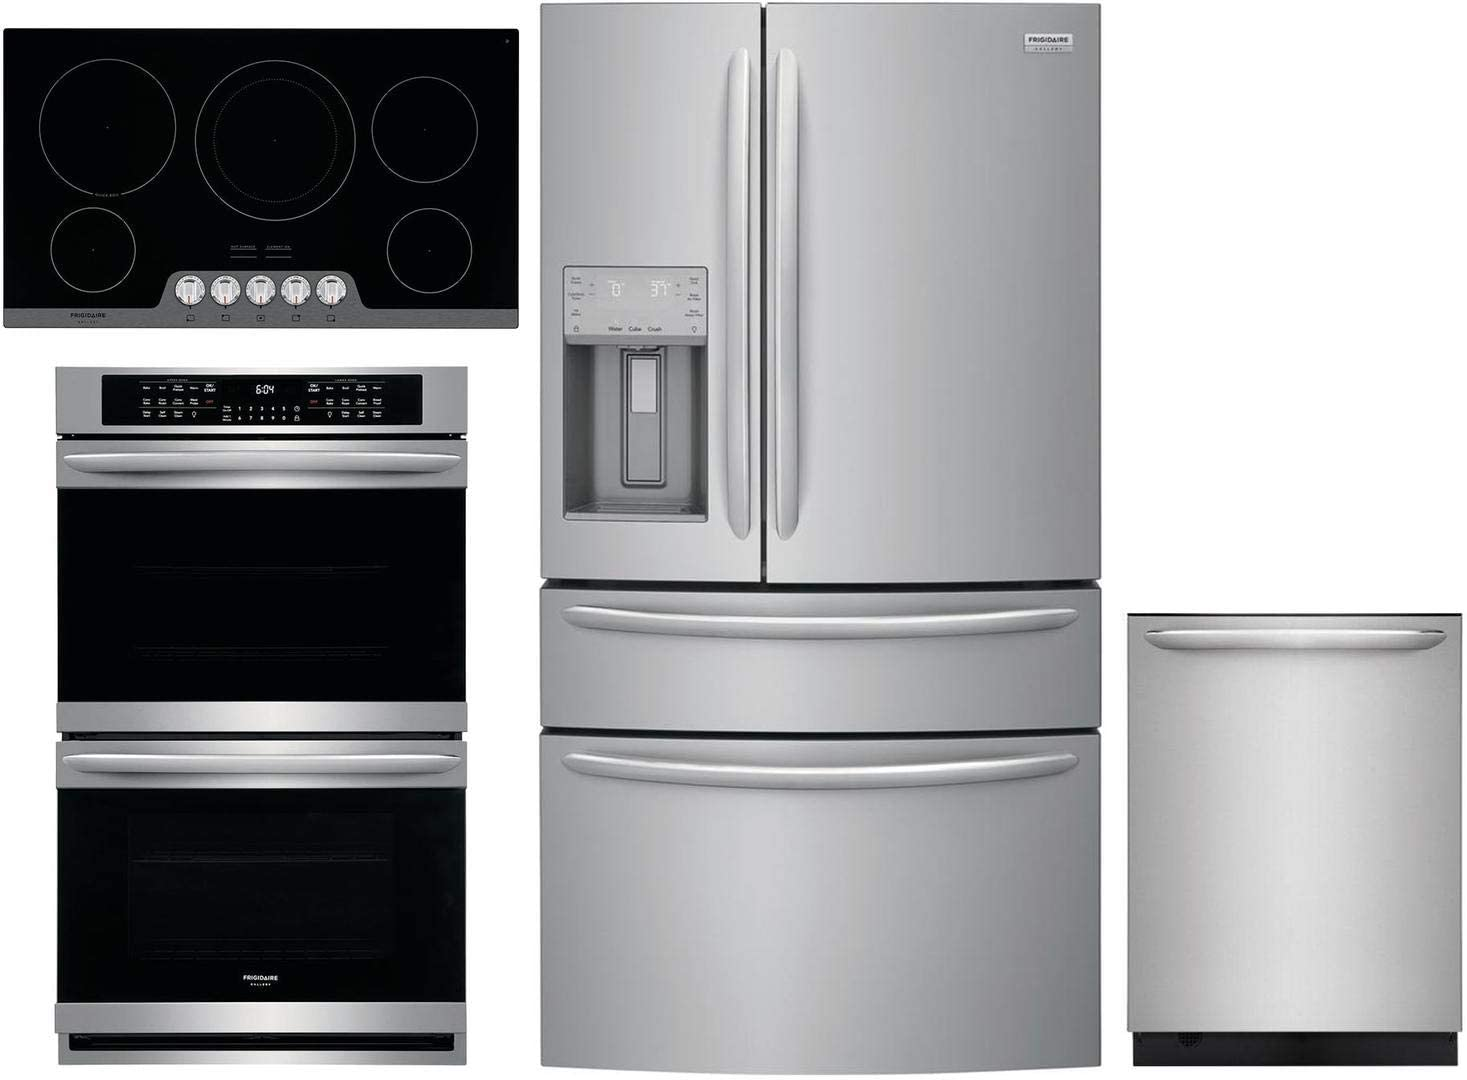 Amazon Com Frigidaire 4 Piece Kitchen Appliance Package With Fg4h2272uf 36 French Door Refrigerator Fget3066uf 30 Electric Double Wall Oven Fgec3648us 36 Electric Cooktop And Fgid2479sf 24 Built In Fully Integrated Dishwasher In